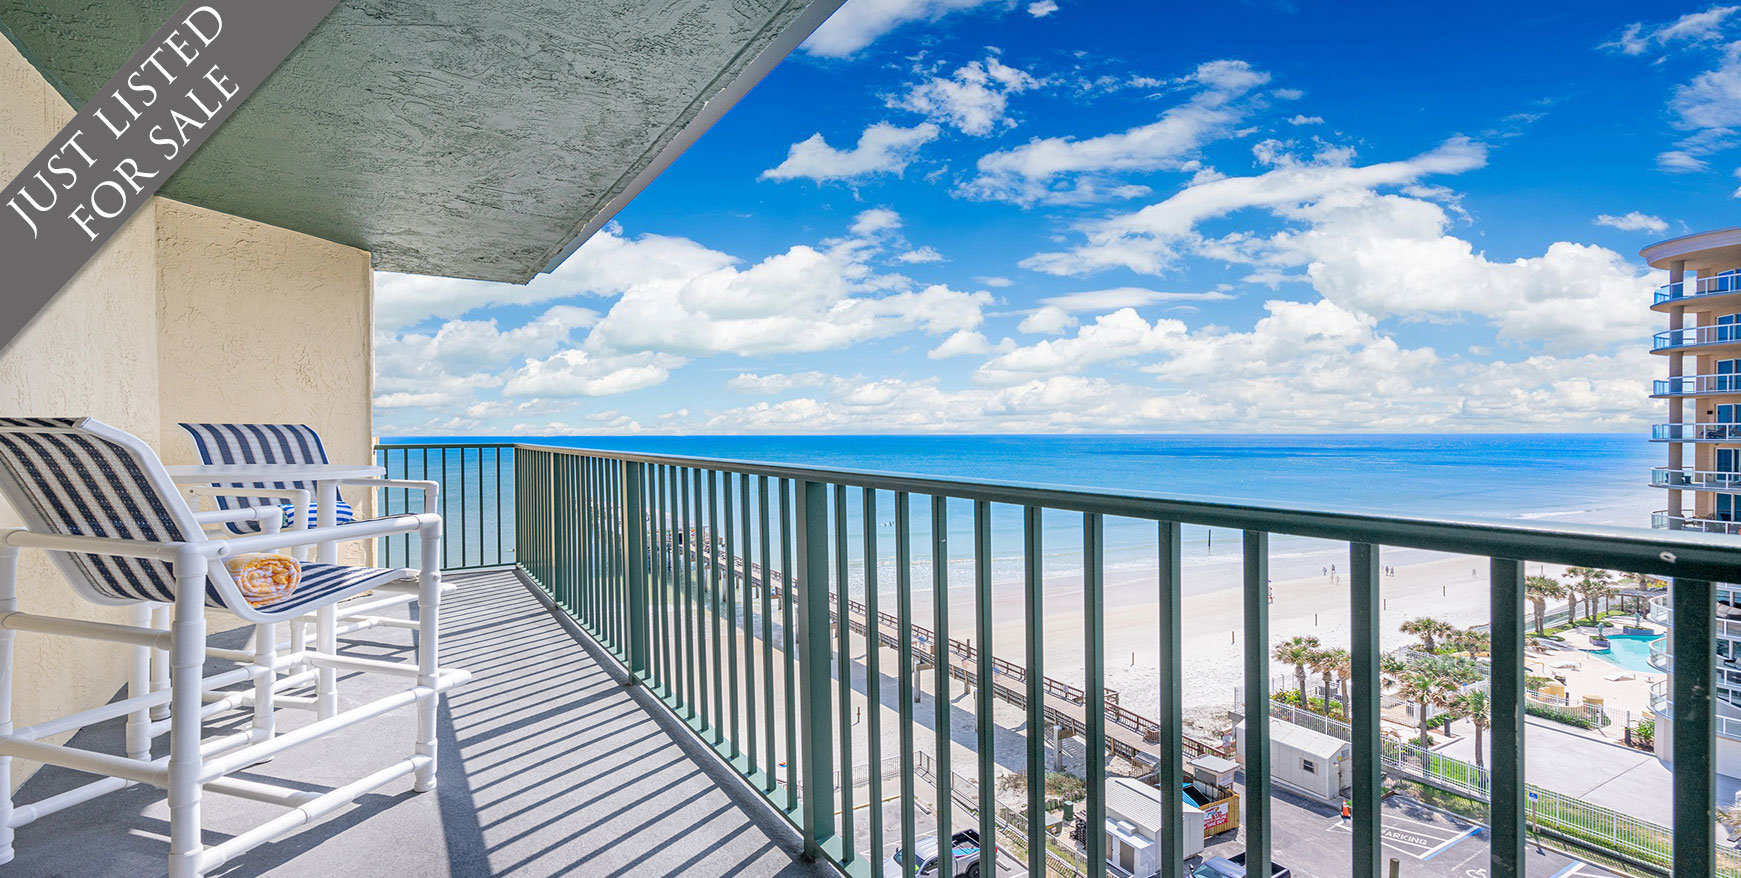 Sunglow Condos For Sale Oceanfront Real Estate at  3647 S Atlantic Ave Daytona Beach, FL